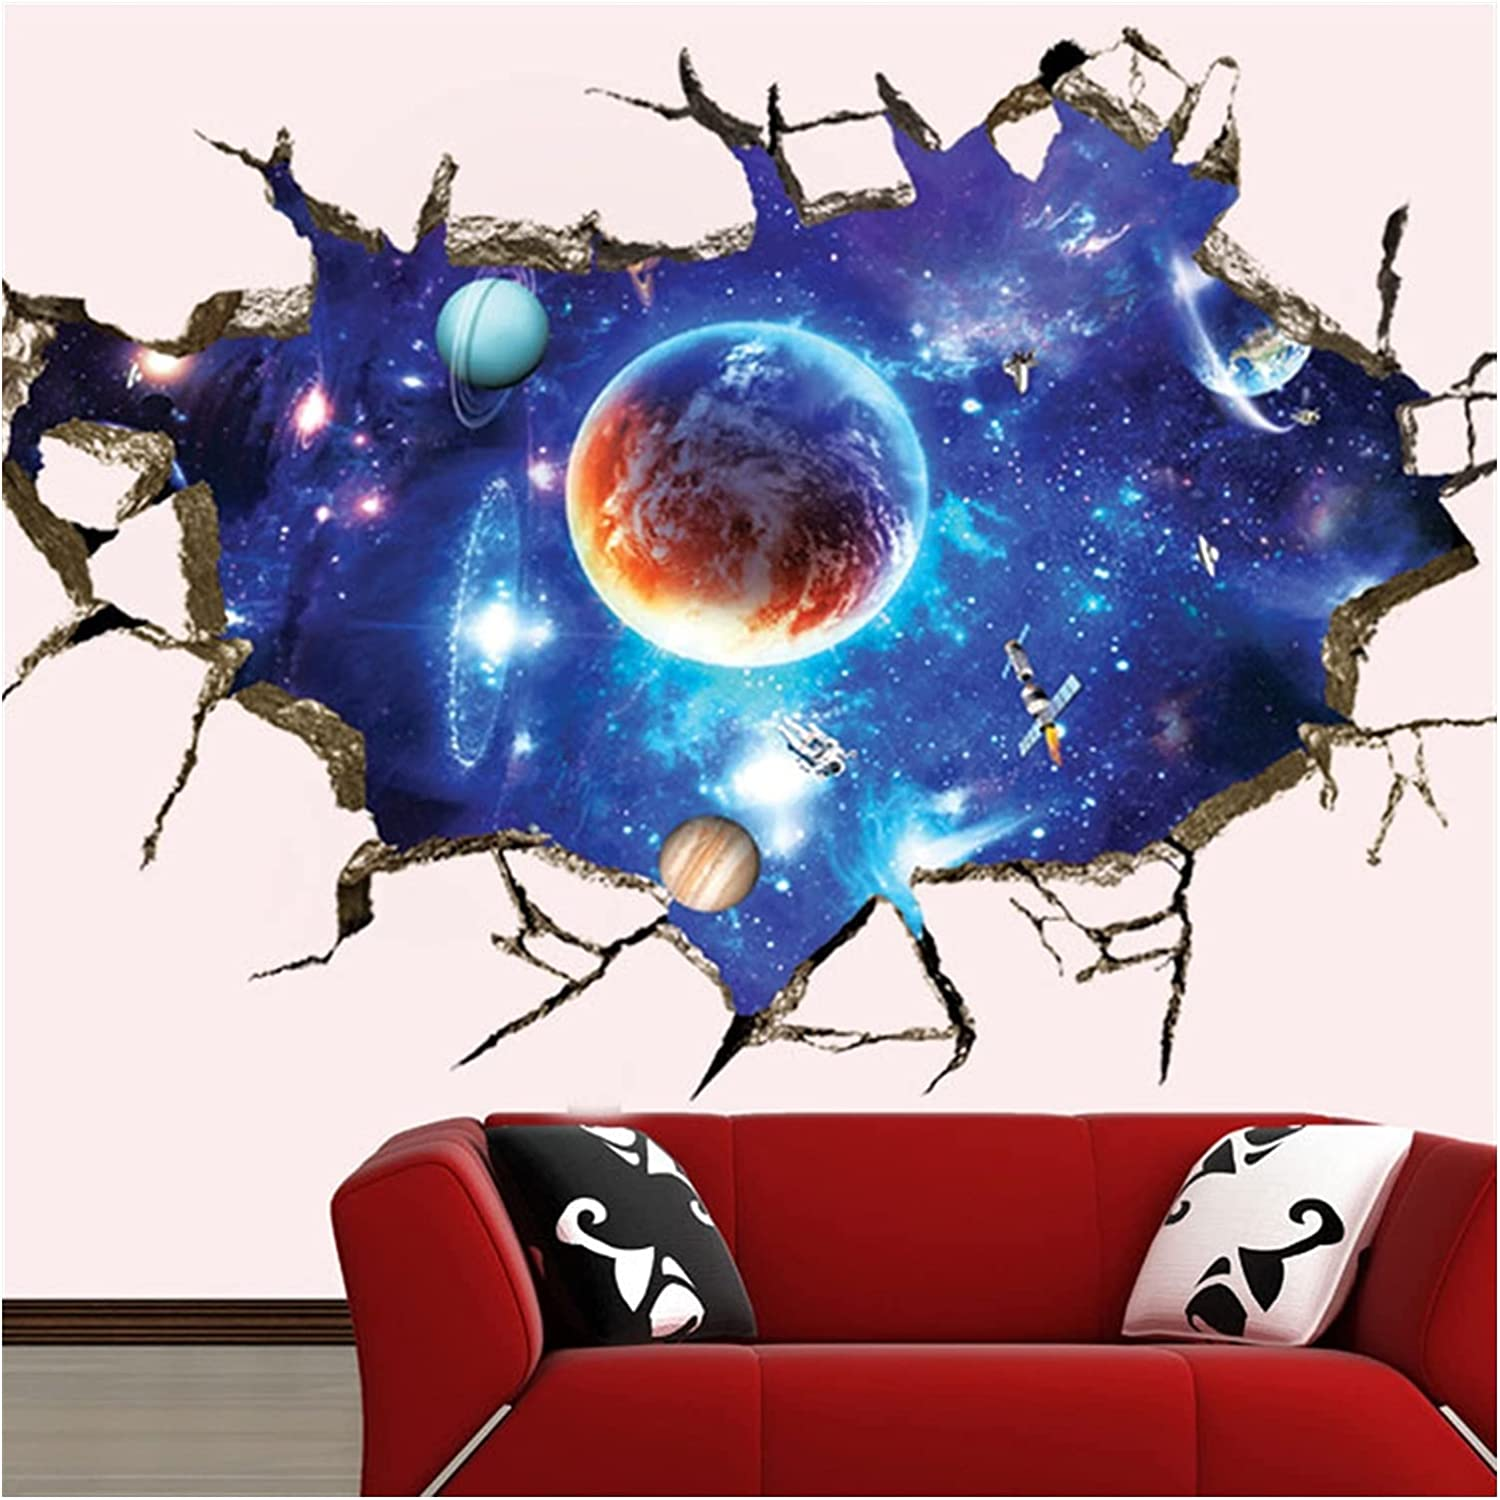 Free Shipping New DEYUCHANG Cracked Space Planet Wall O Max 89% OFF 3D Removable Sticker World